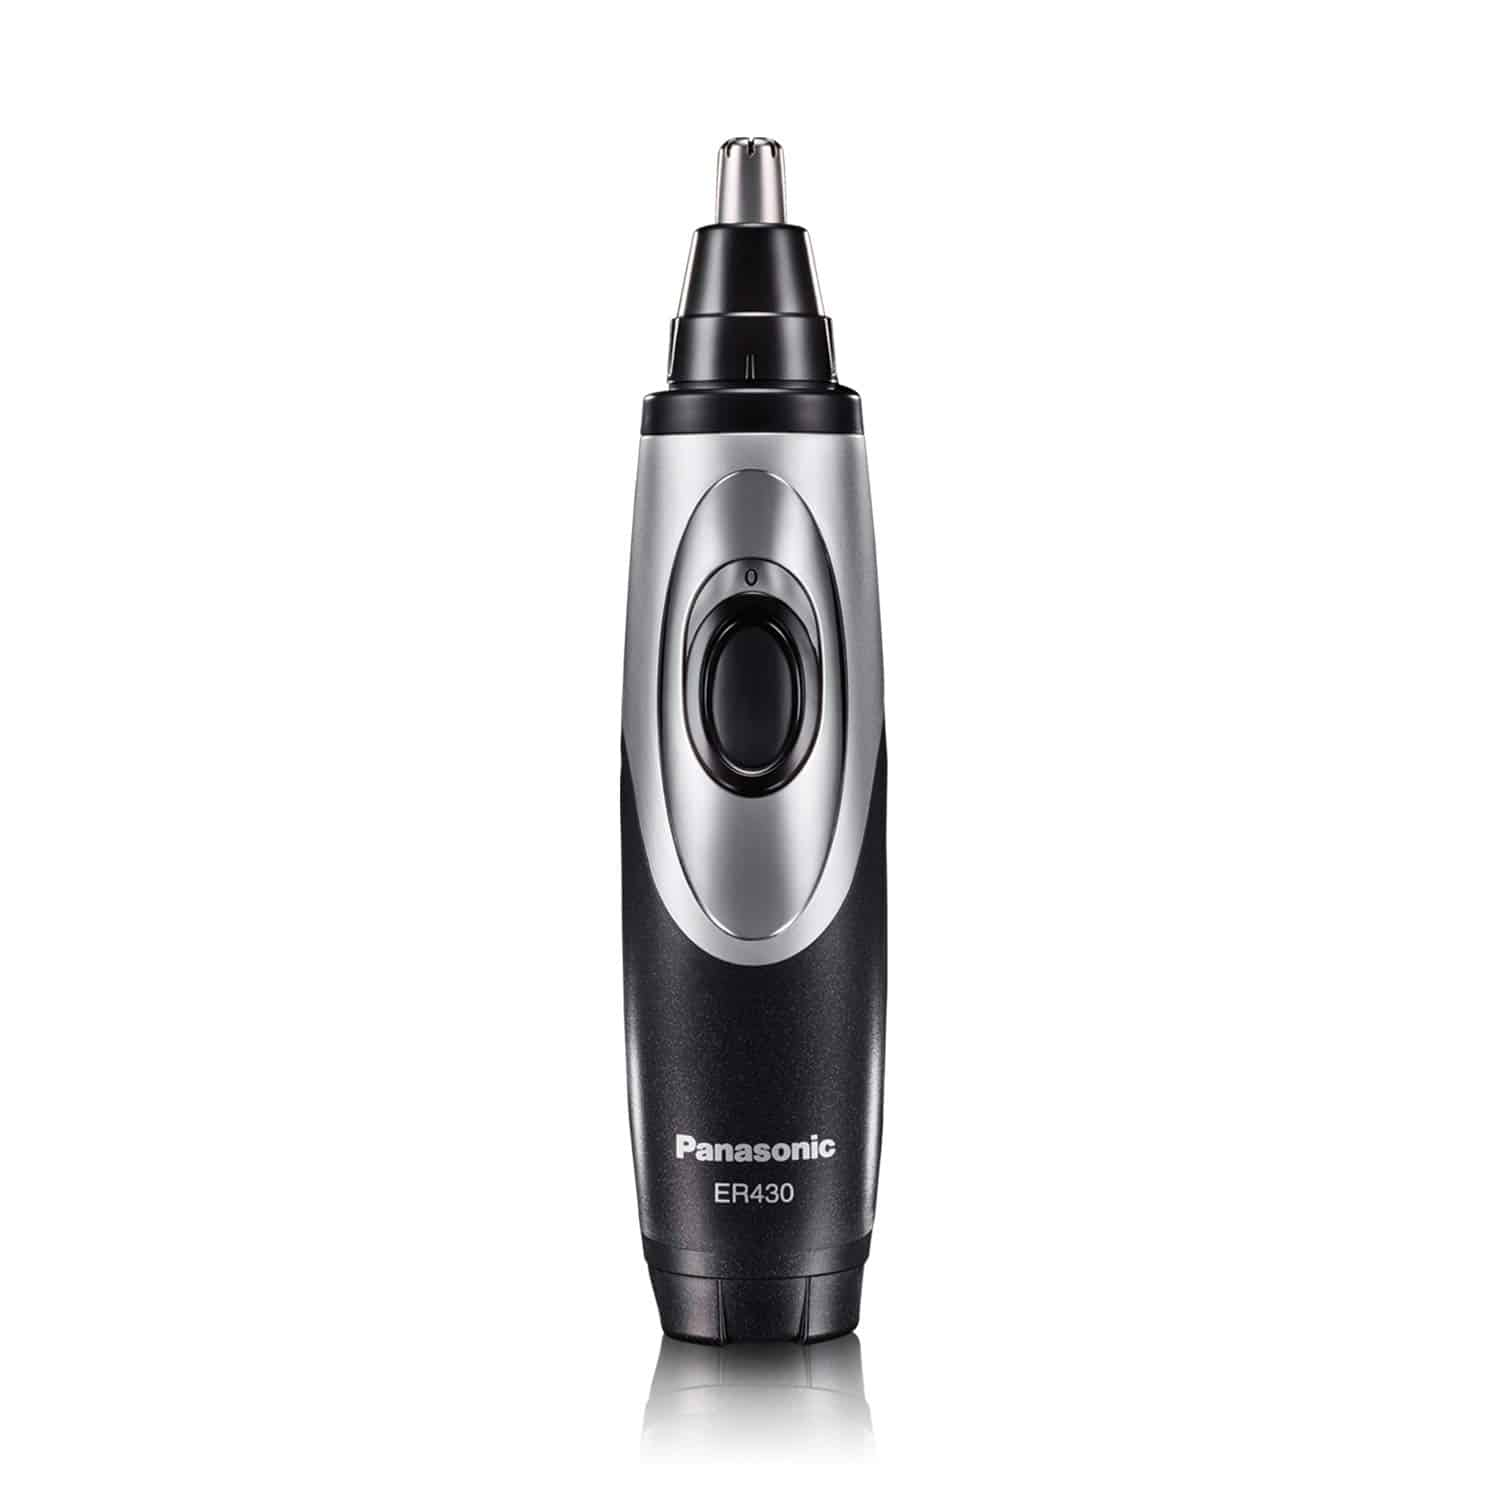 Panasonic Nose Hair Trimmer